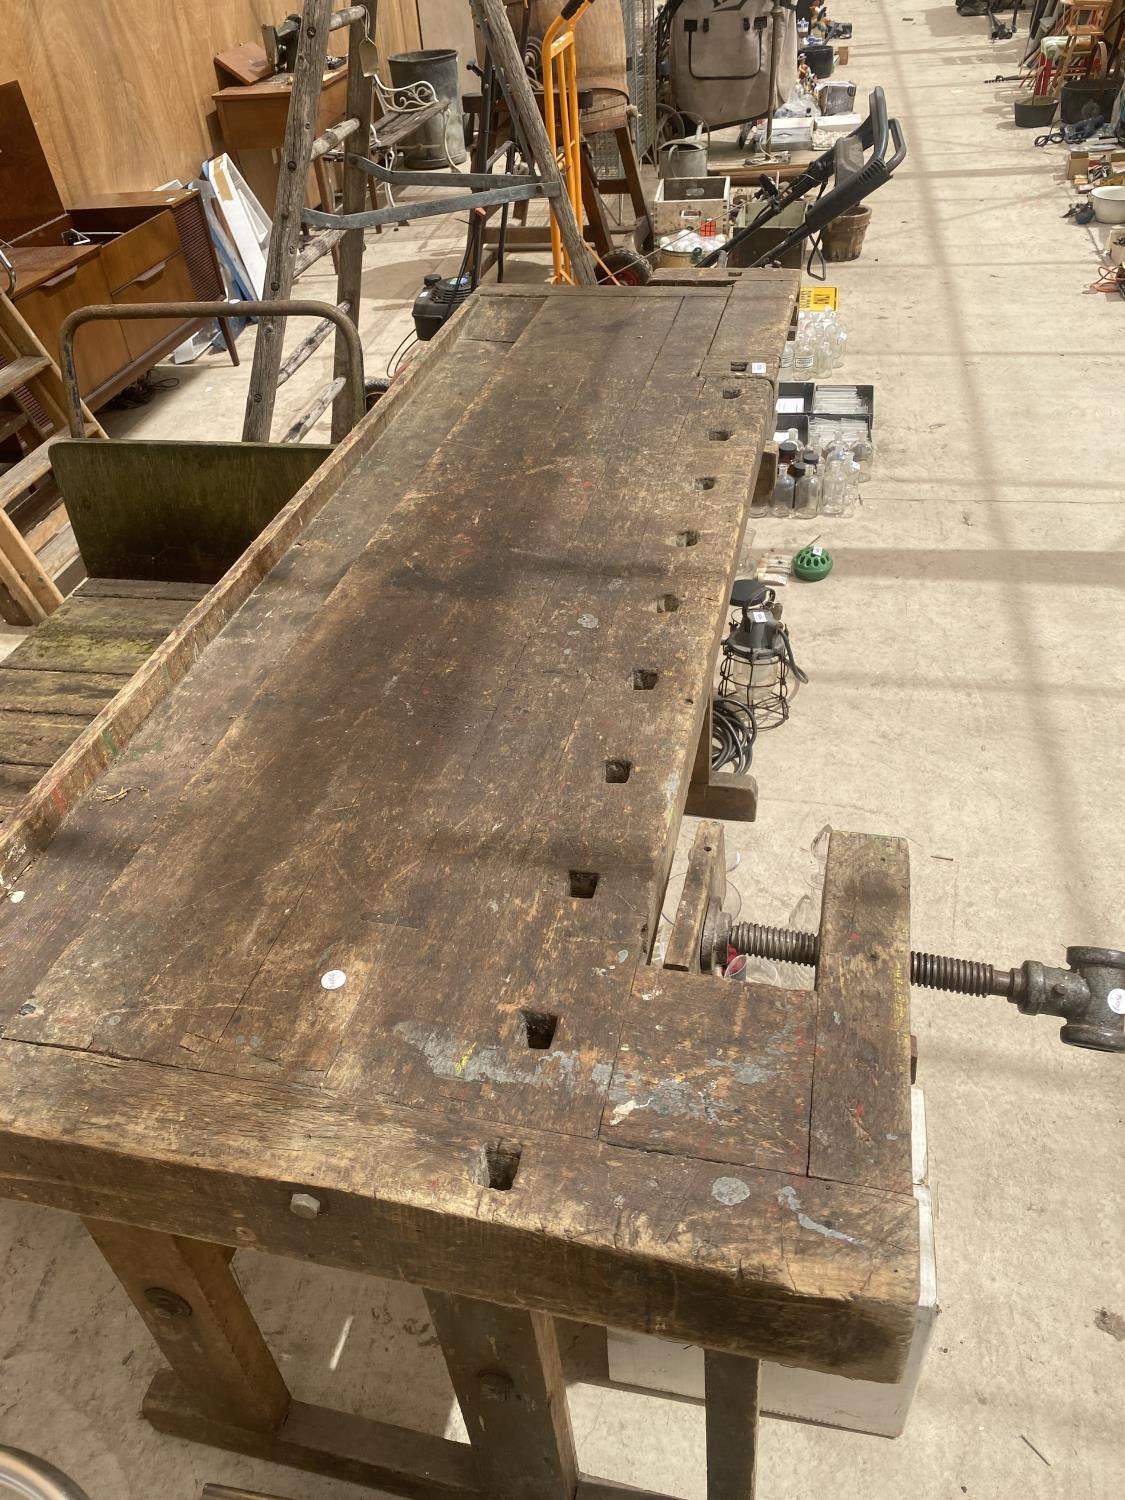 A LARGE VINTAGE WORK BENCH WITH A BENCH VICE - Image 5 of 5